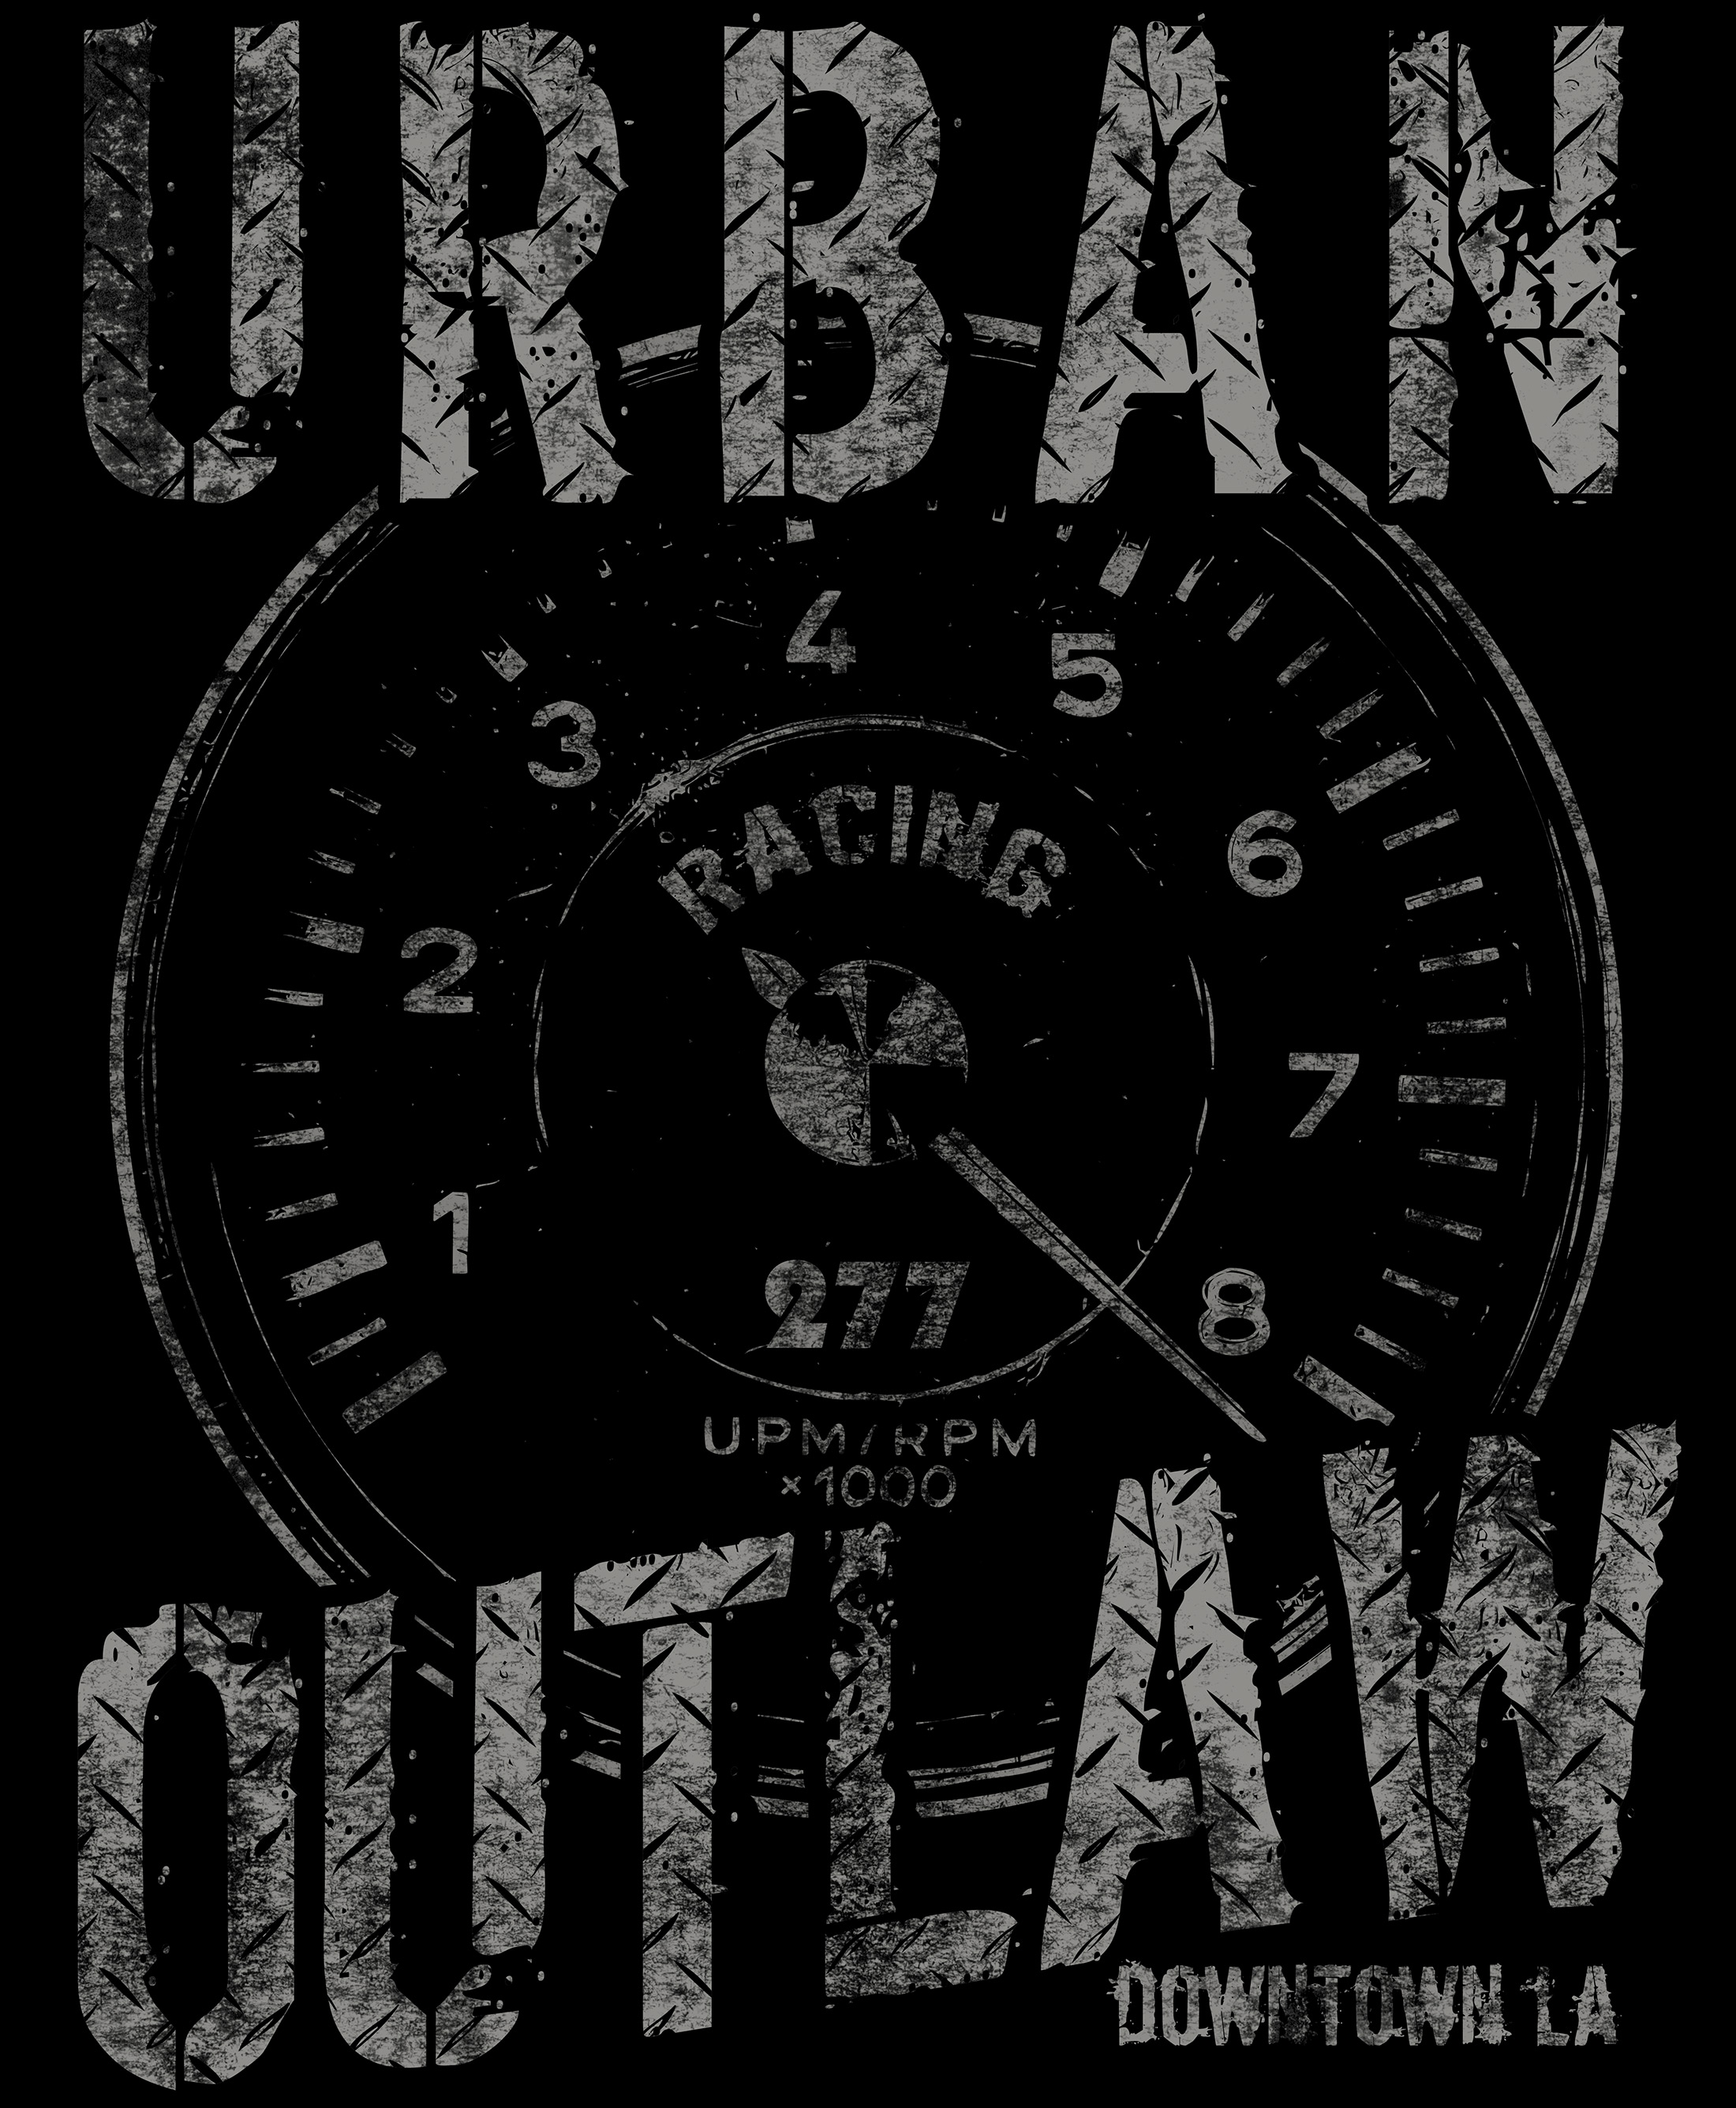 Urban Outlaw Porsche Racing Rev Counter one color T-shirt Design